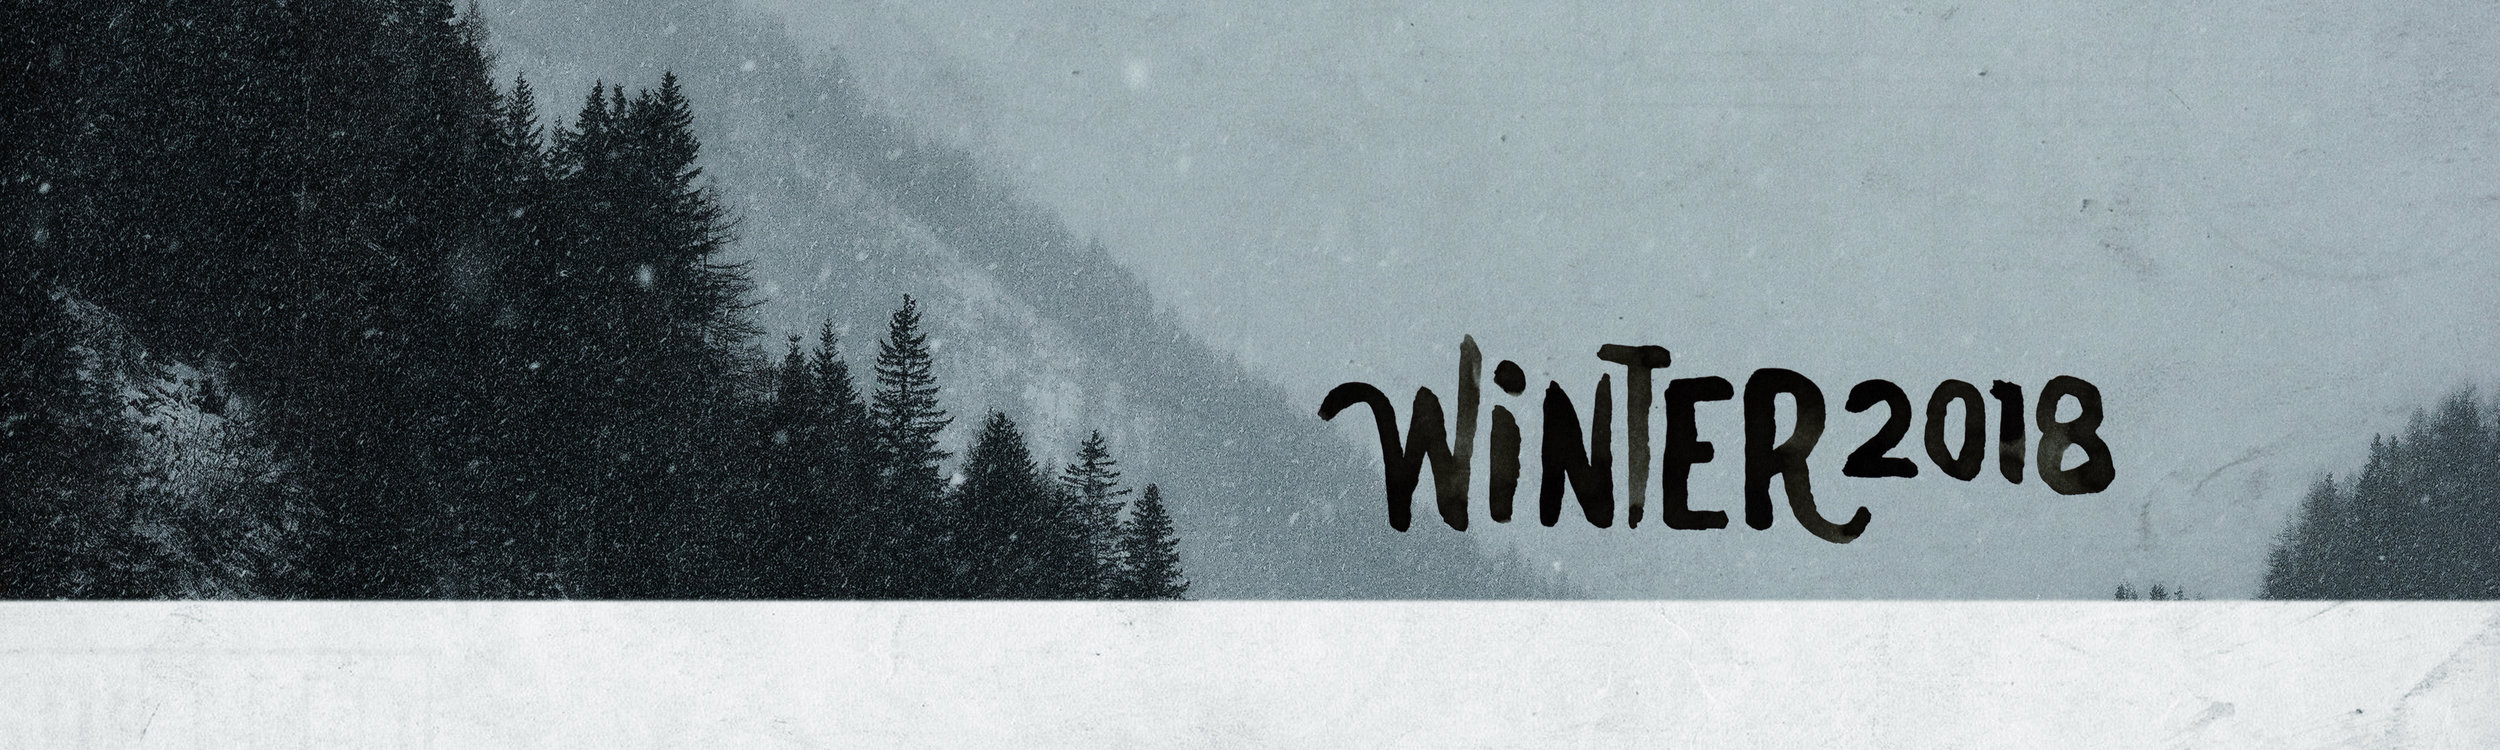 Winter 2018_Web Banner.jpg